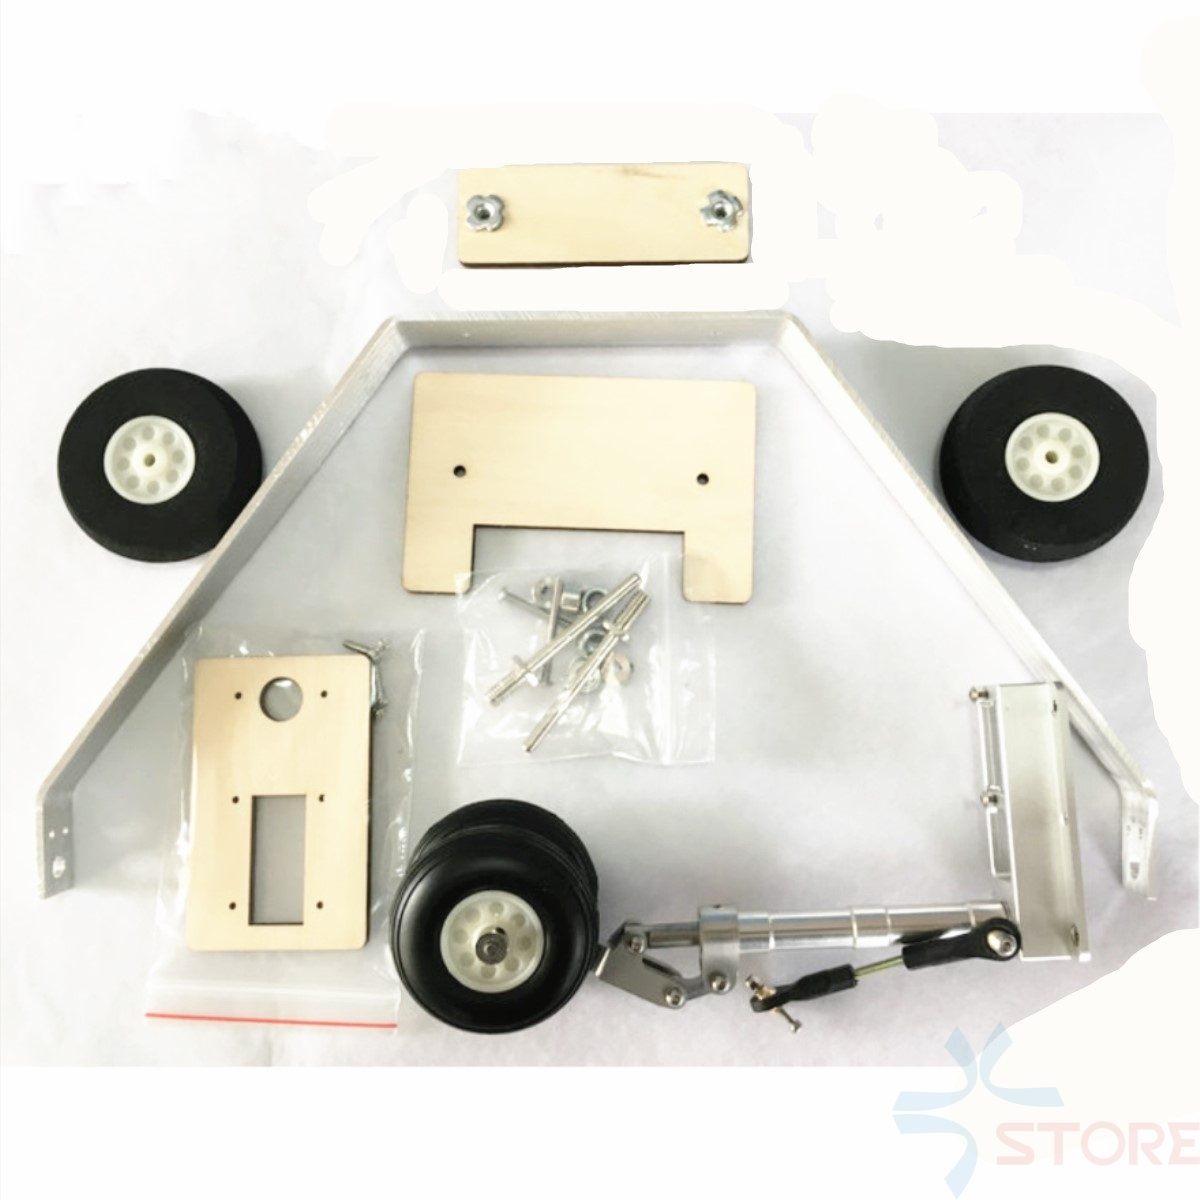 цена Aluminum alloy landing gear remote control retractable for undercarriage for Skywalker x8 EPO Airplane Spare Parts